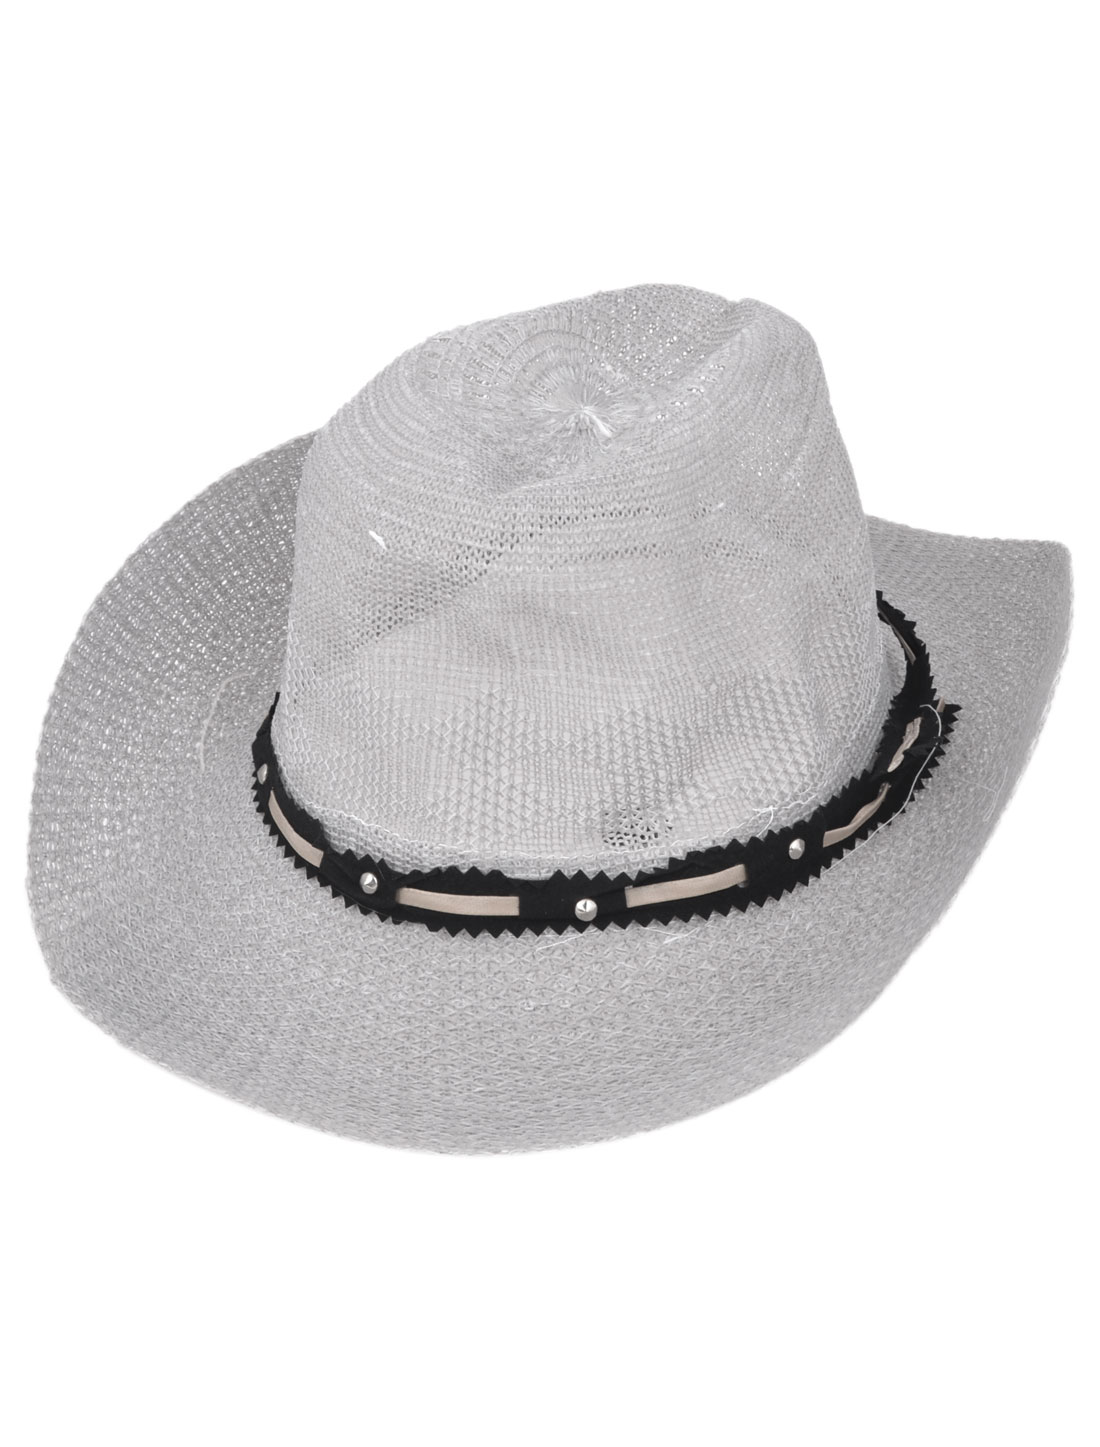 "Man Lady Spring 4.7"" Depth Adjustable Chin Strap Cowboy Hat Light Gray S"